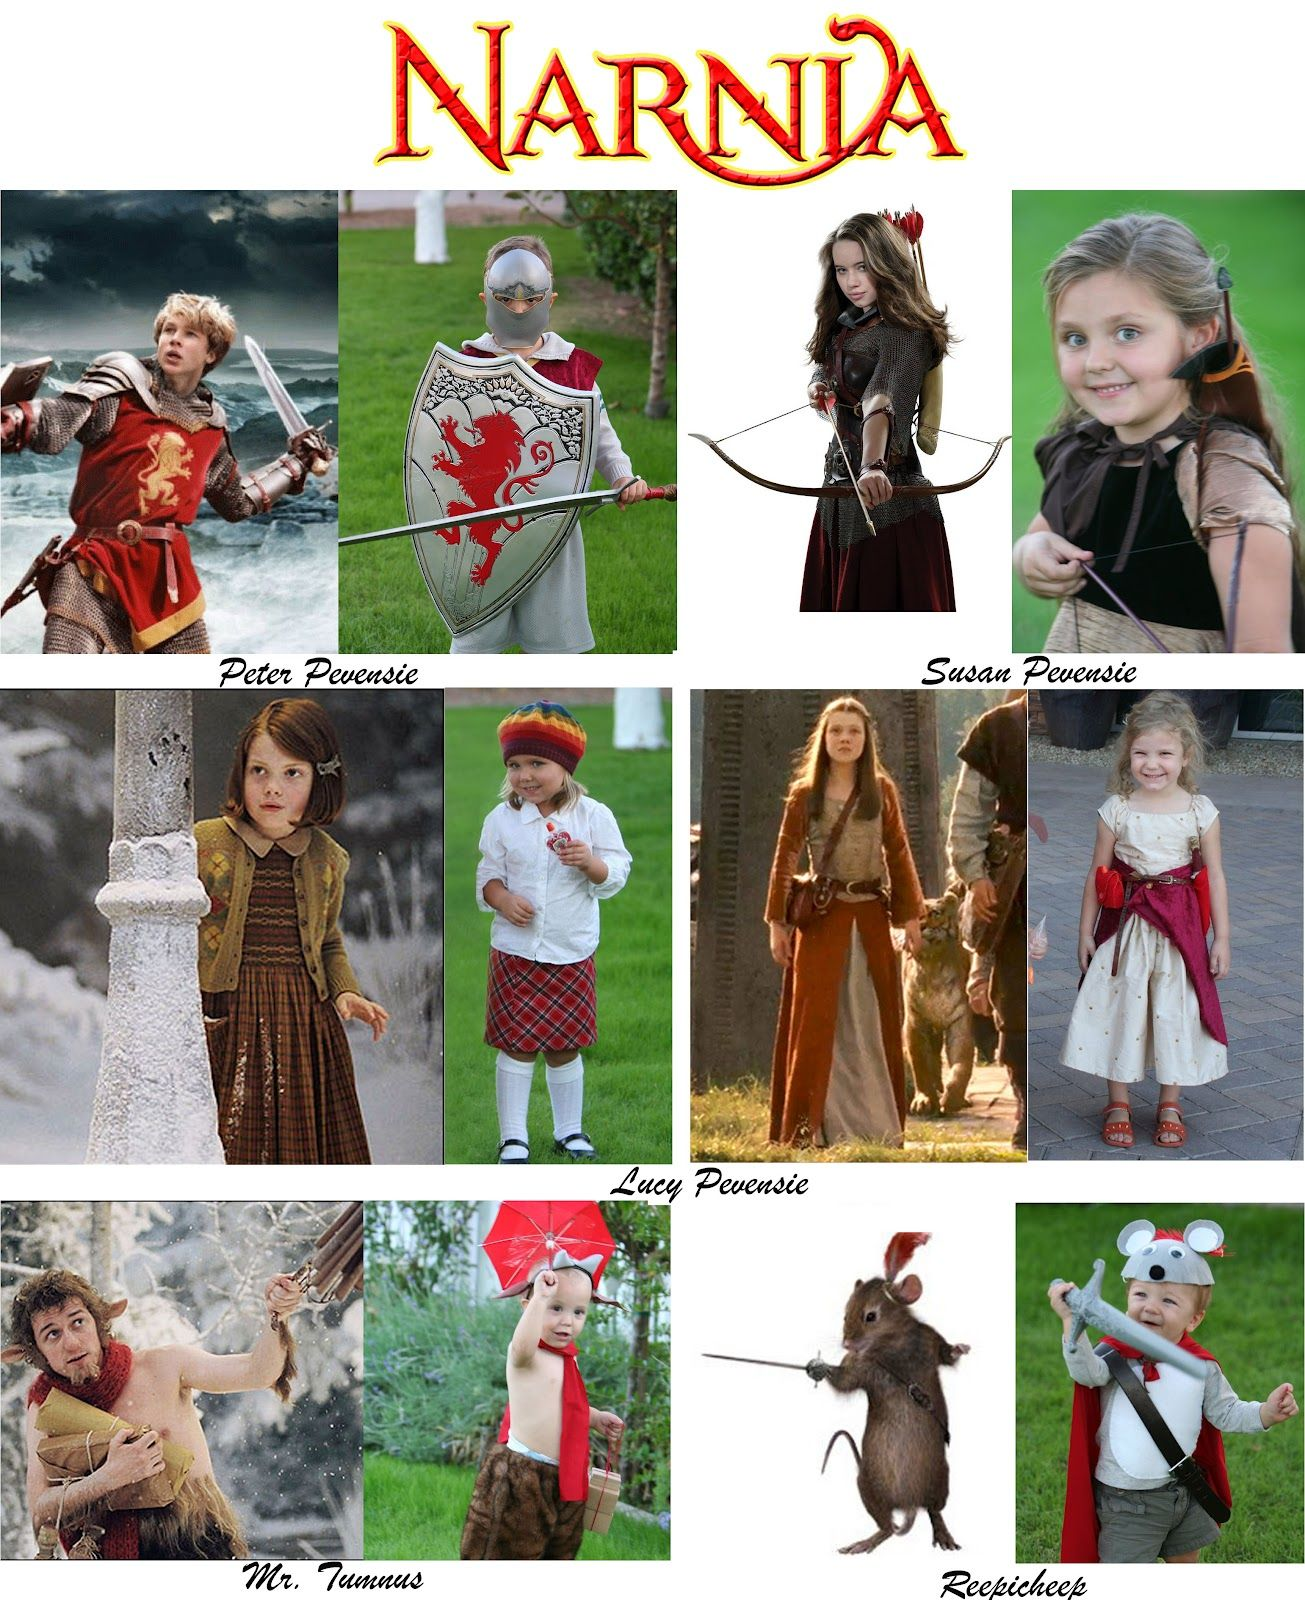 df0adb94cb14f Group Costumes: Chronicles of Narnia | Costume Ideas in 2019 ...